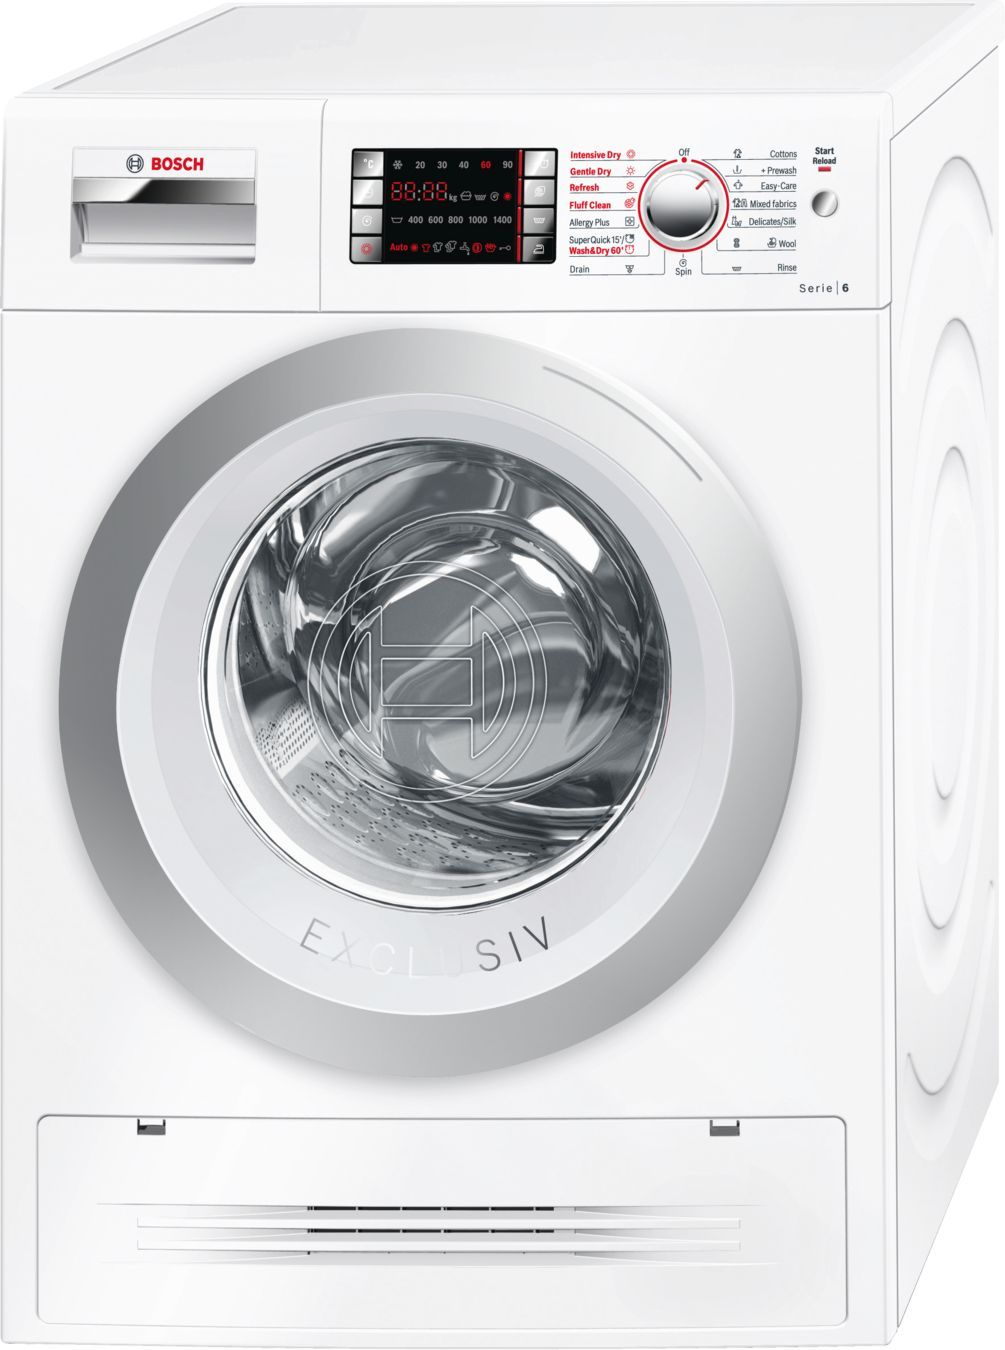 Washer Dryer Serie 6 WVH28490AU BOSCH (With images